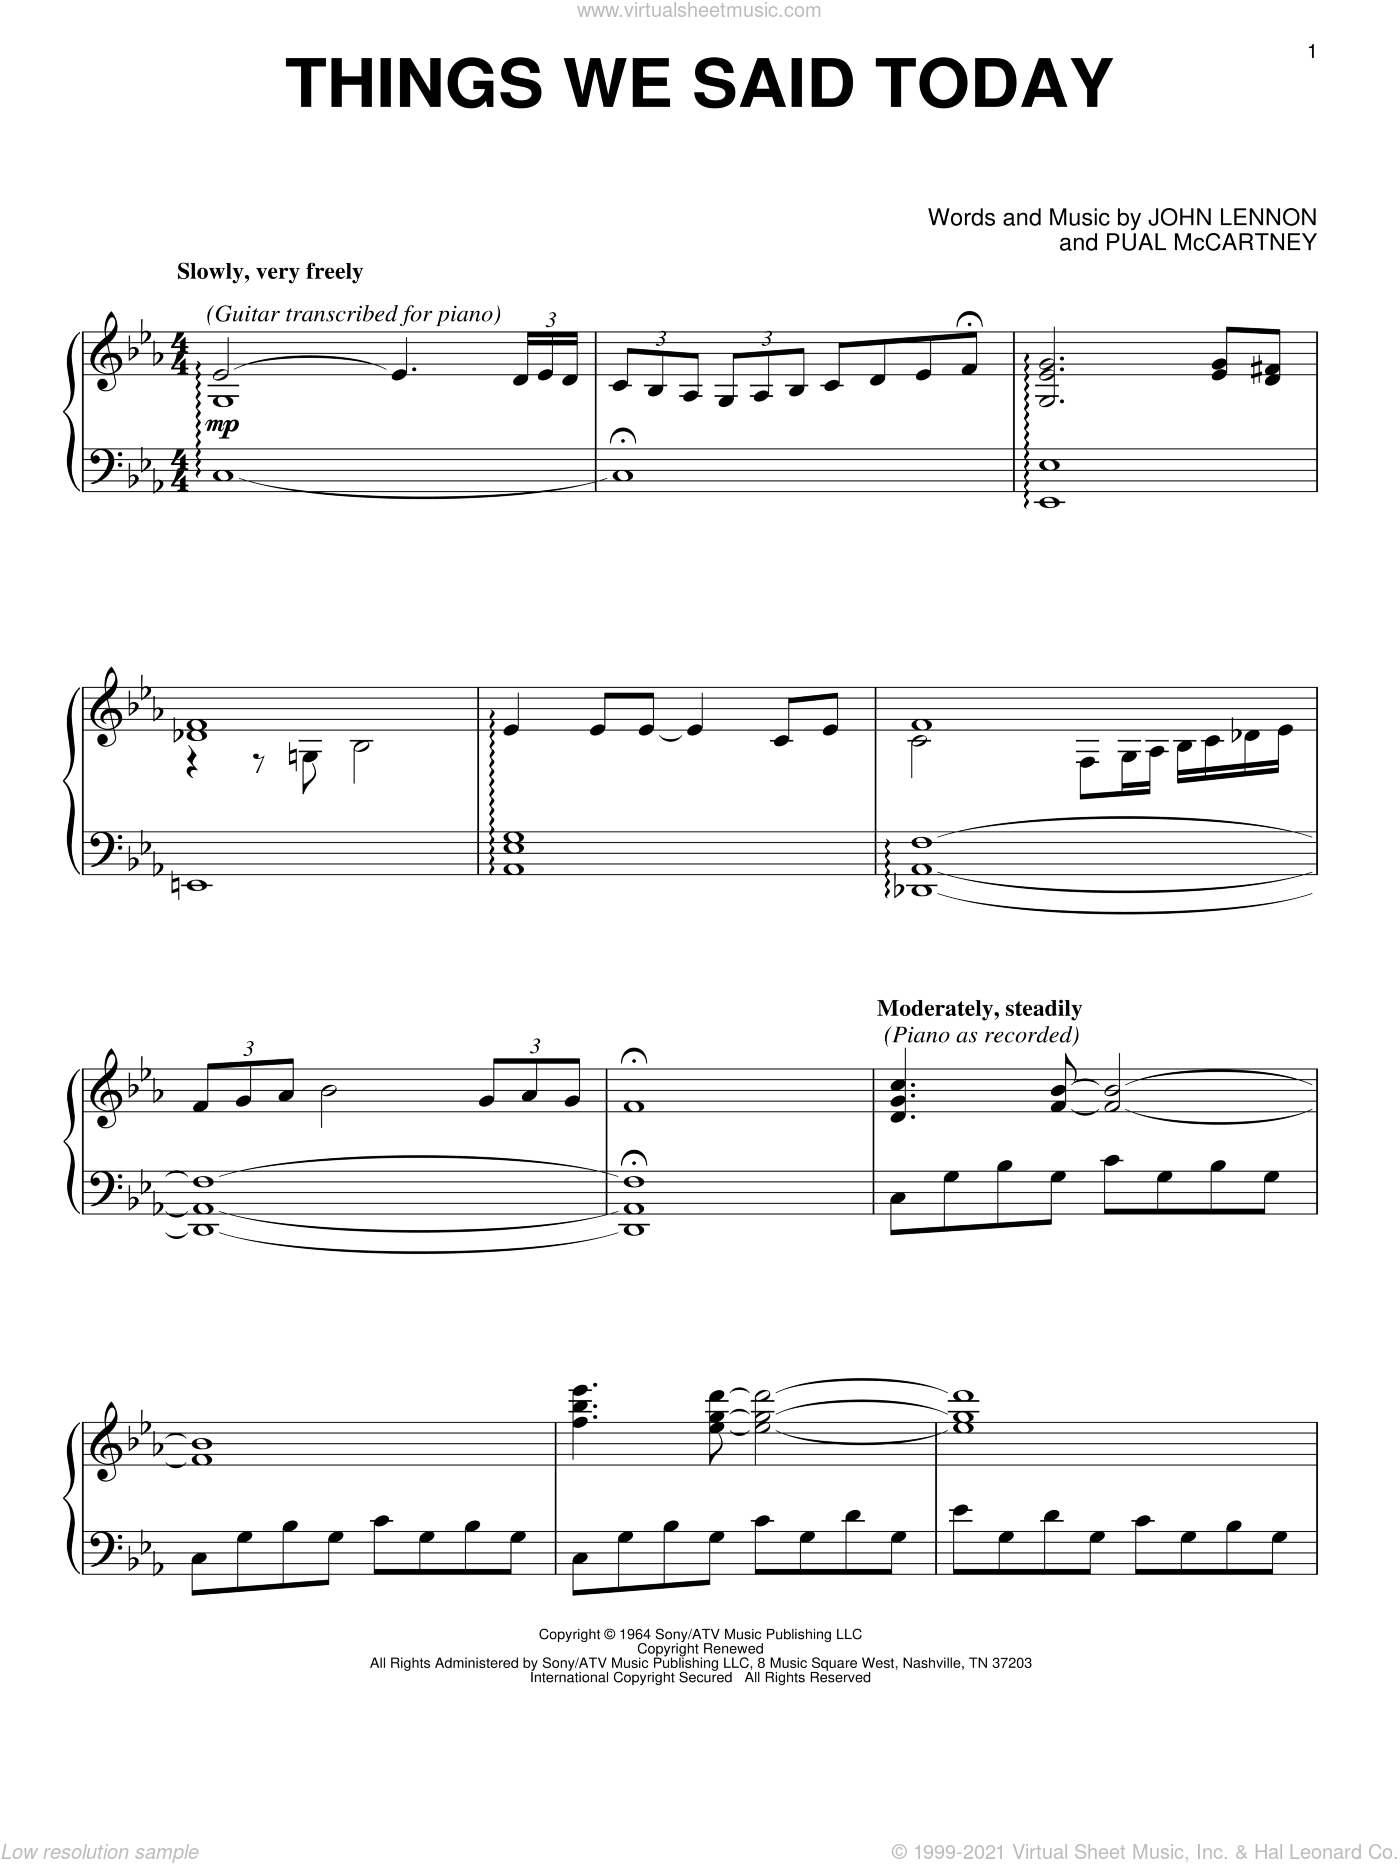 Things We Said Today sheet music for piano solo by David Lanz, The Beatles, John Lennon and Paul McCartney, intermediate. Score Image Preview.